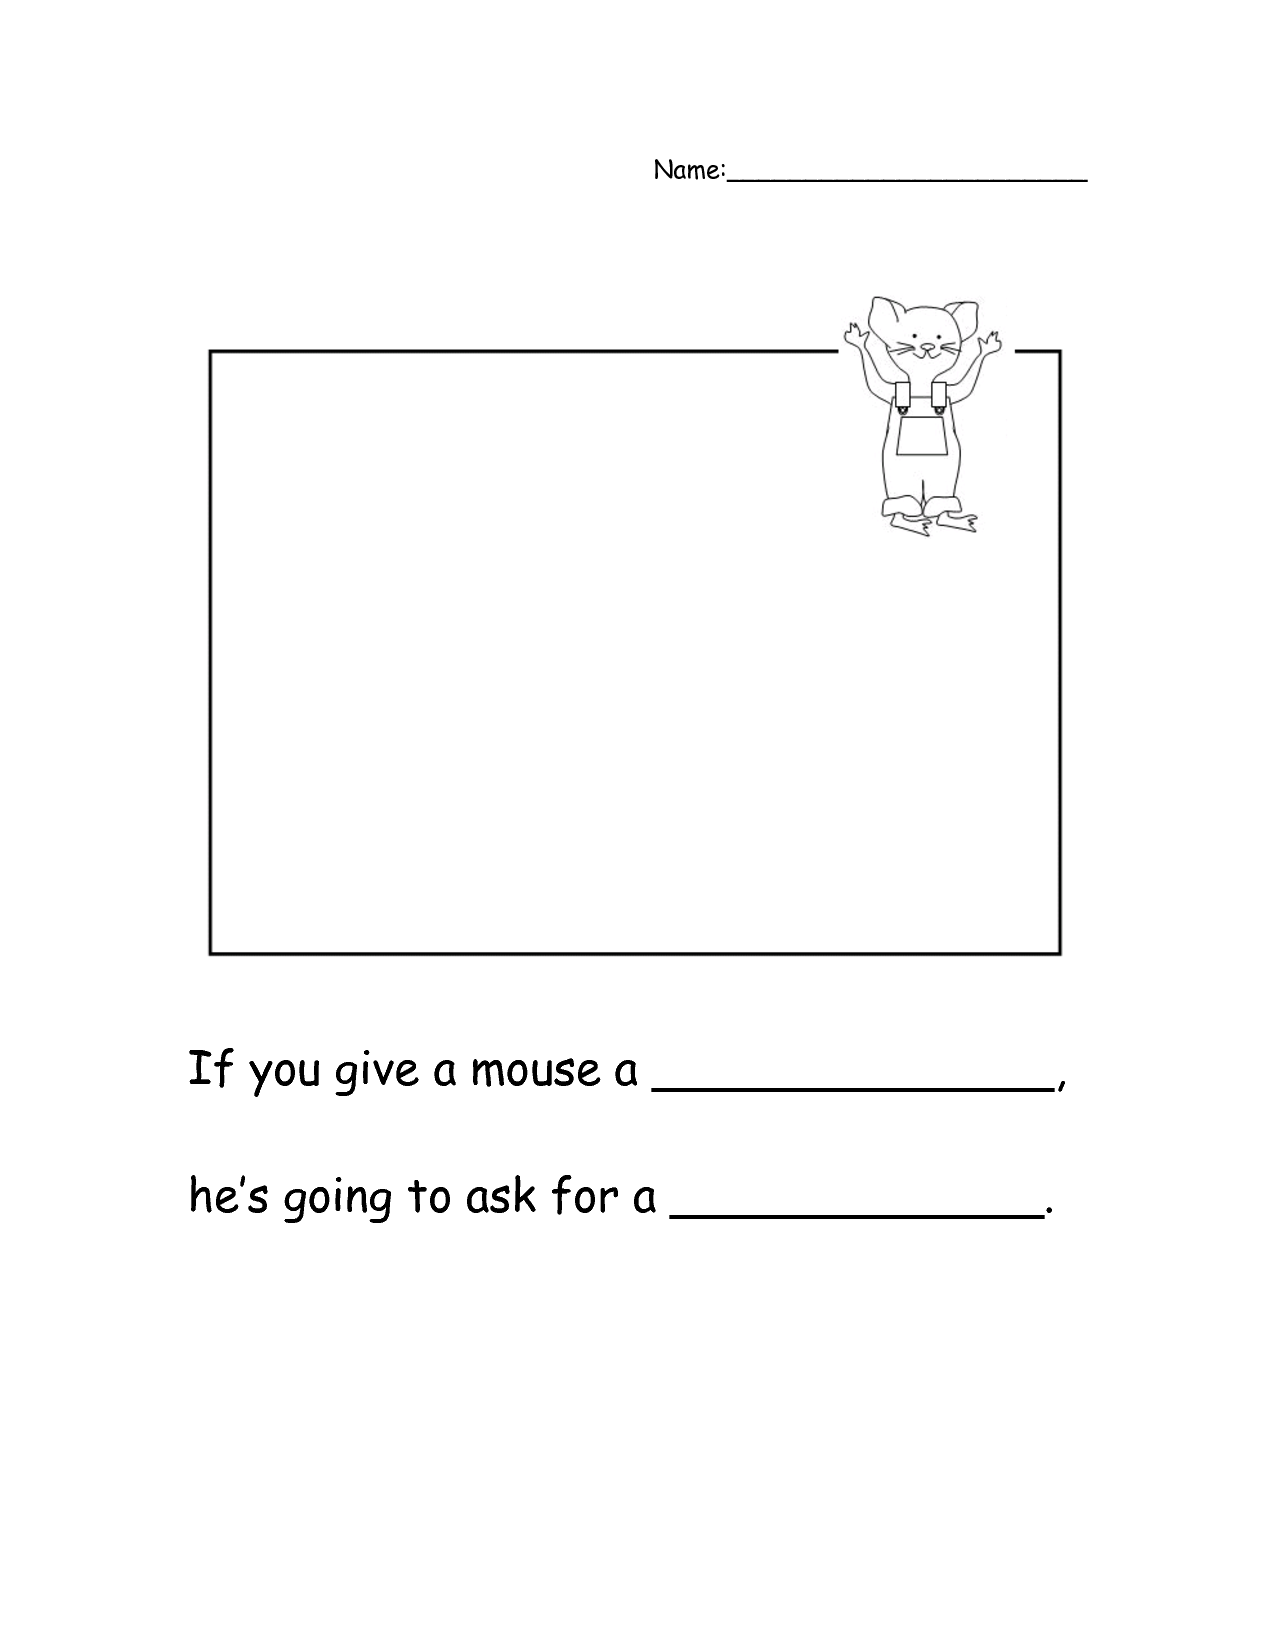 worksheet If You Give A Mouse A Cookie Worksheets if you give a mouse cookie printable worksheets google search search